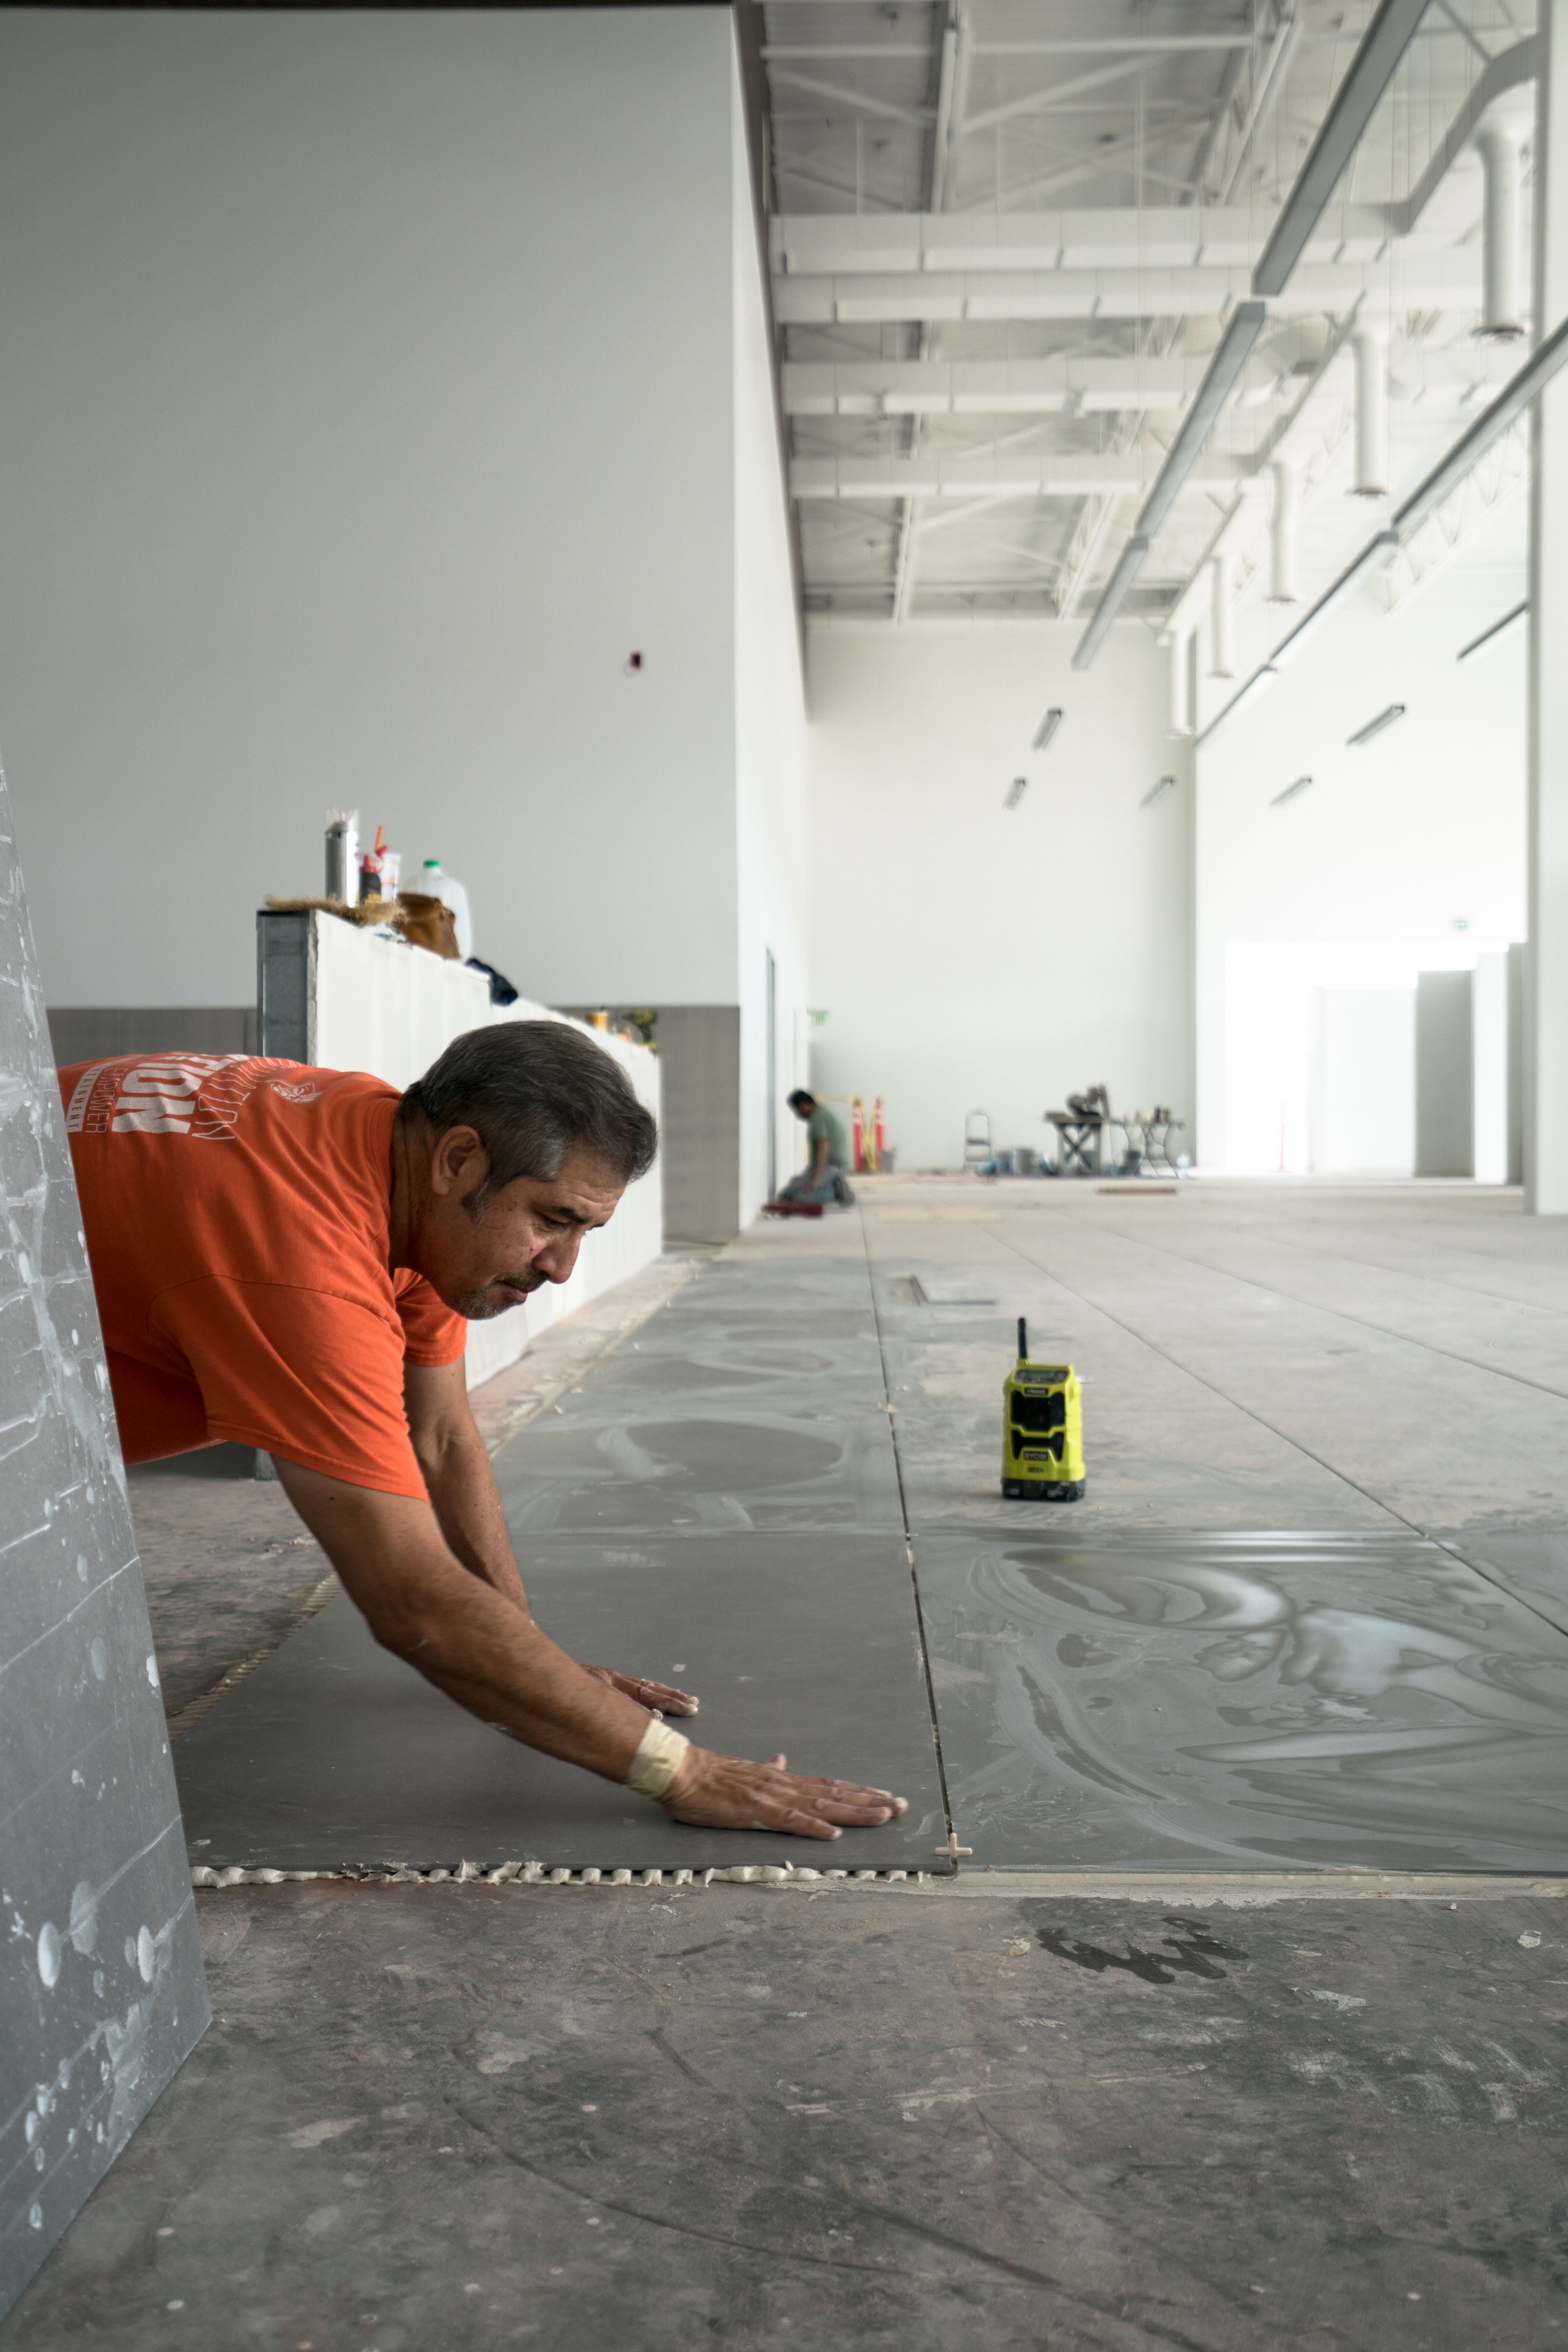 K.D. Stahl Construction Group Inc. San Diego's Leading Commercial General Contractor - Bedrosian Tile & Stone Ground up New Construction